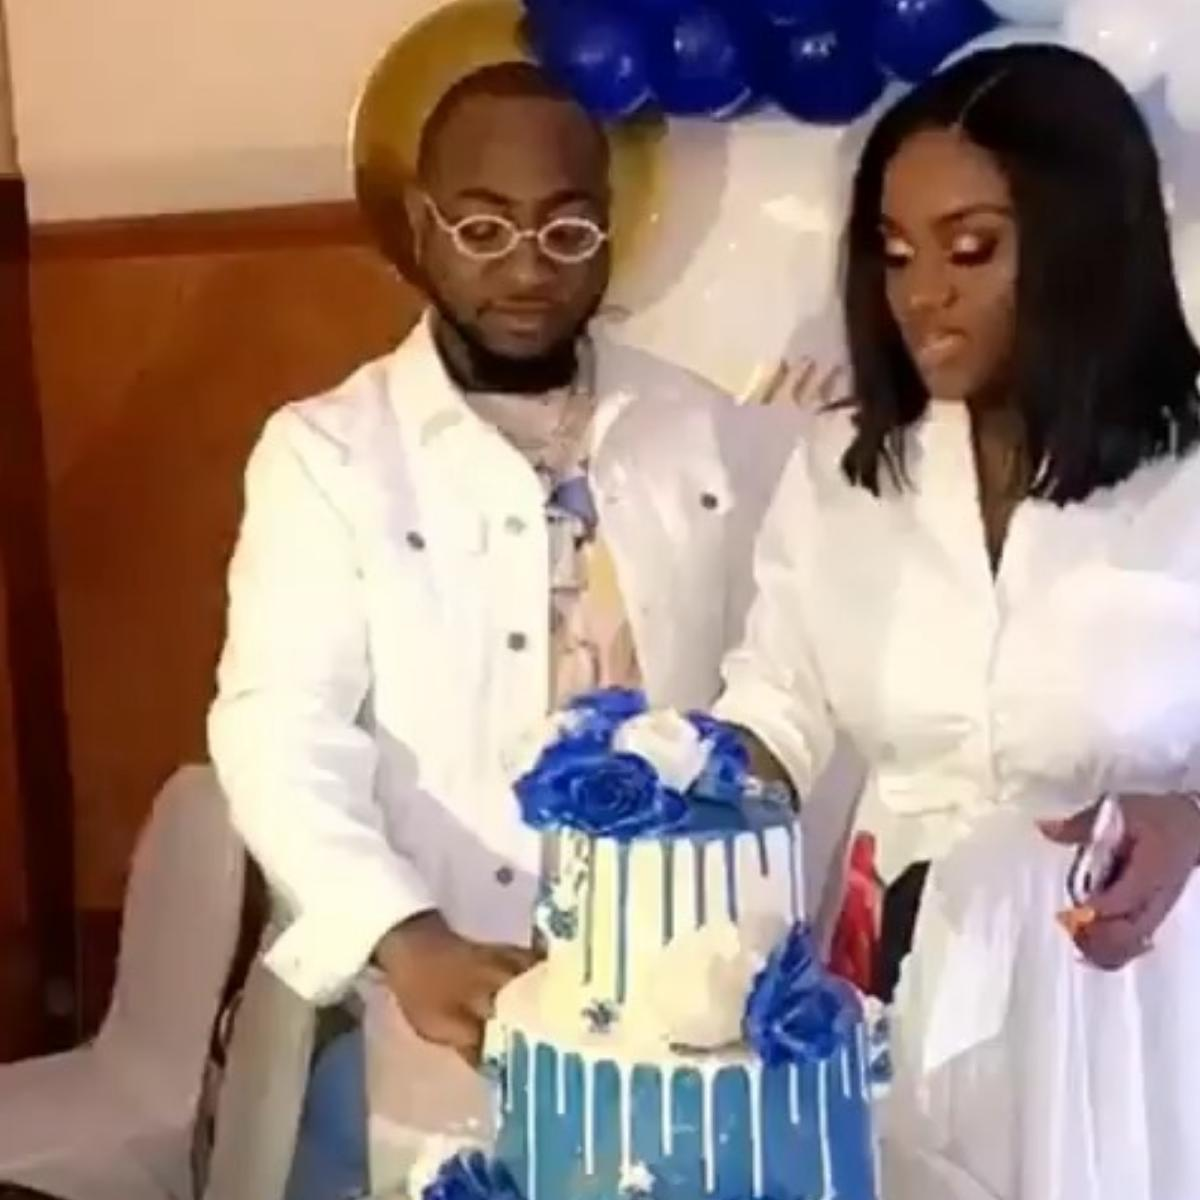 Davido Feeding Chioma At Their Child's Naming Ceremony